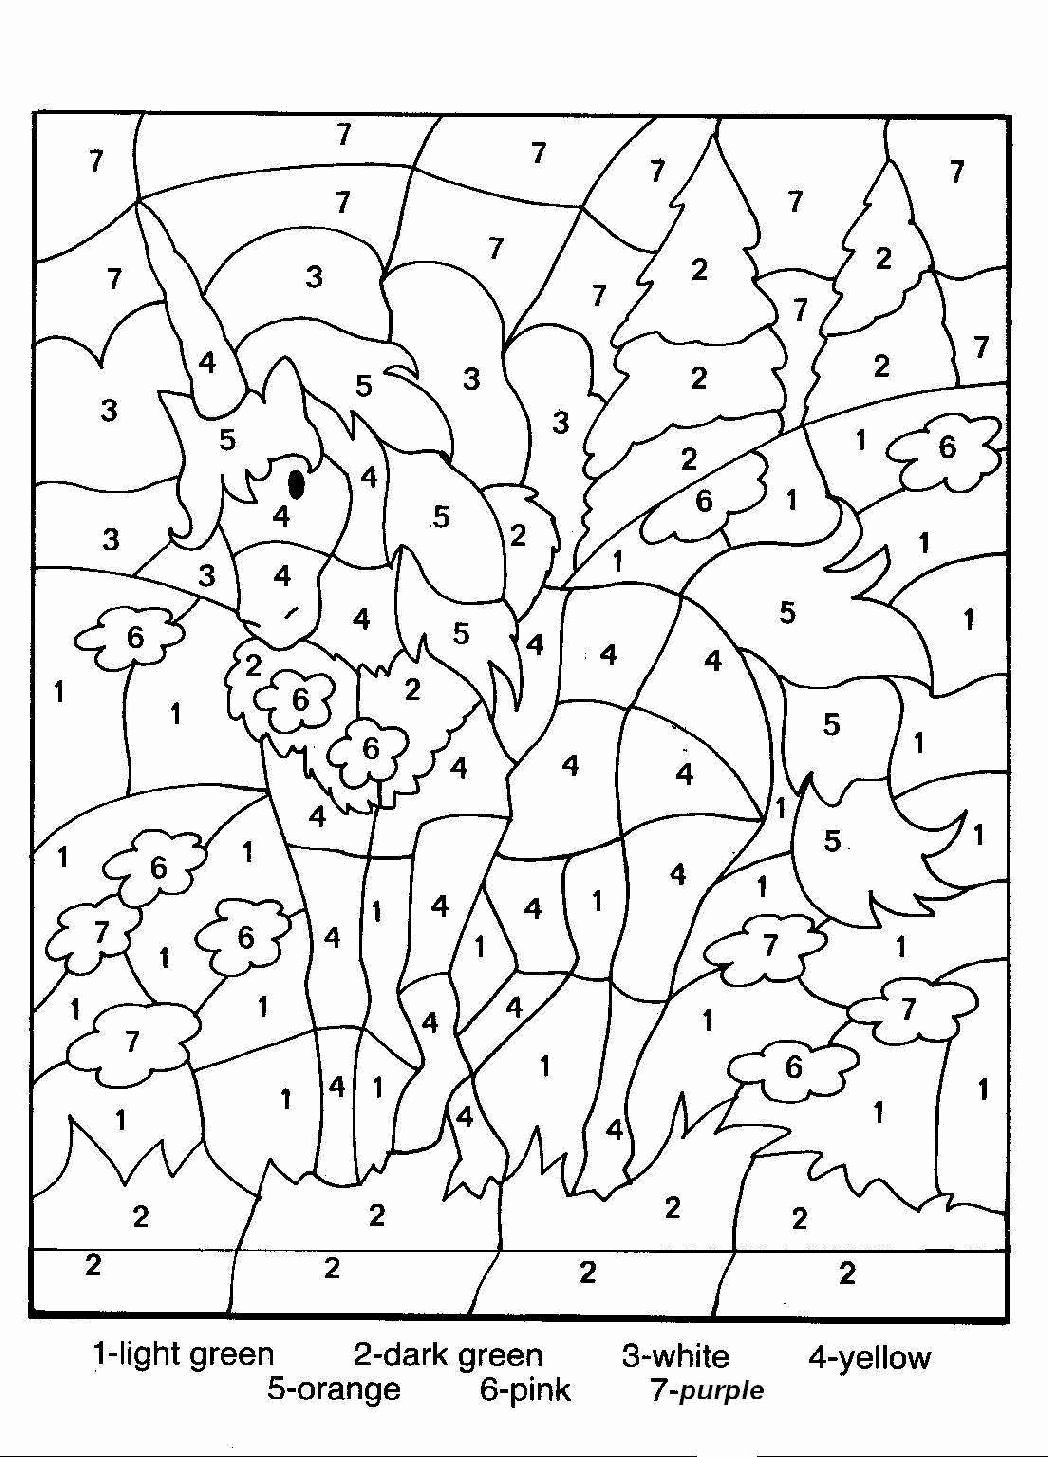 Coloring Pages for 3rd Graders Best Of Printable Coloring Incredible Third Grade Math Colorings